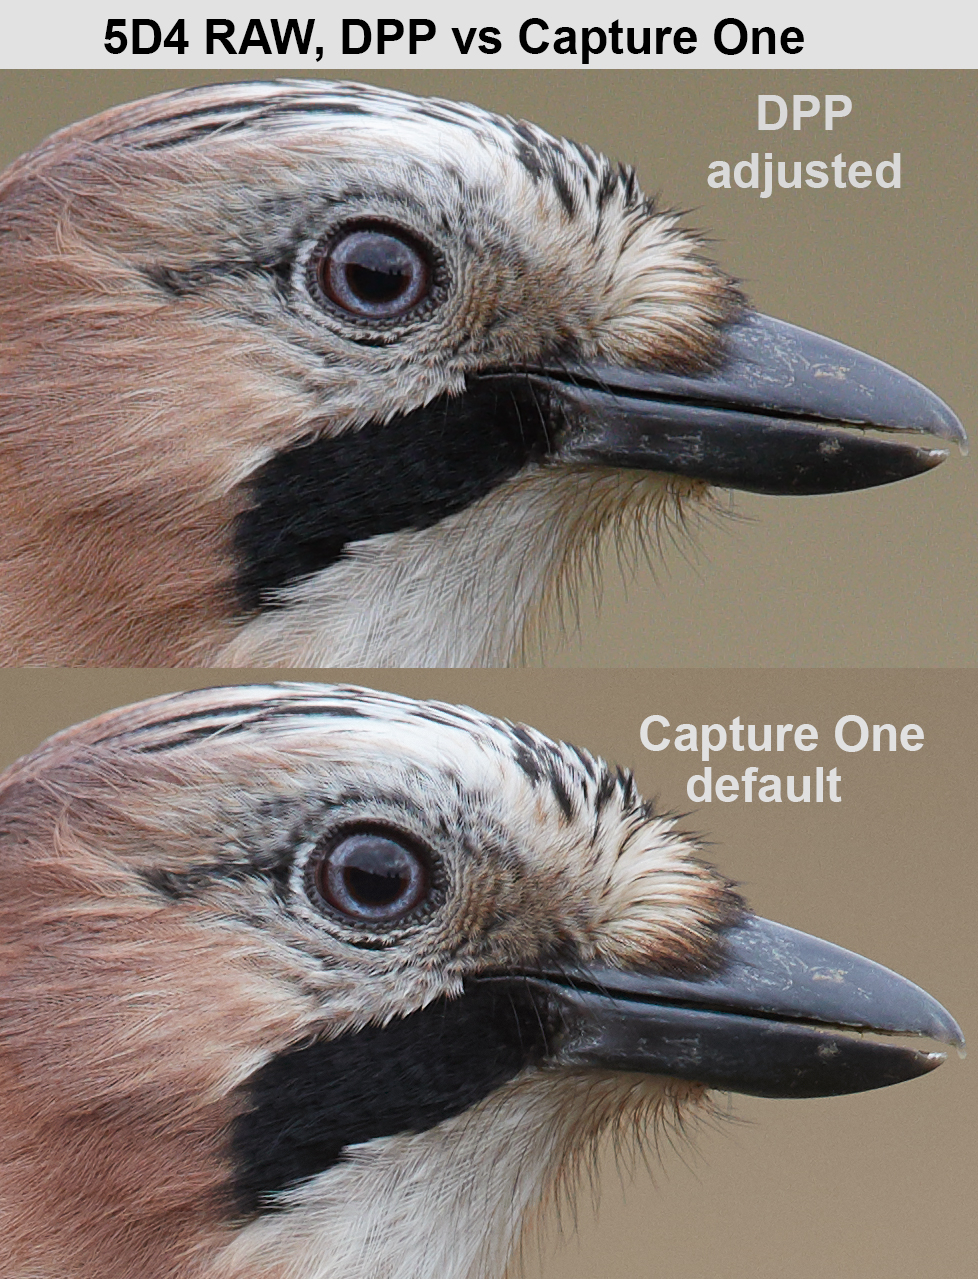 5D4 RAW in Digital Photo Professional vs Capture One